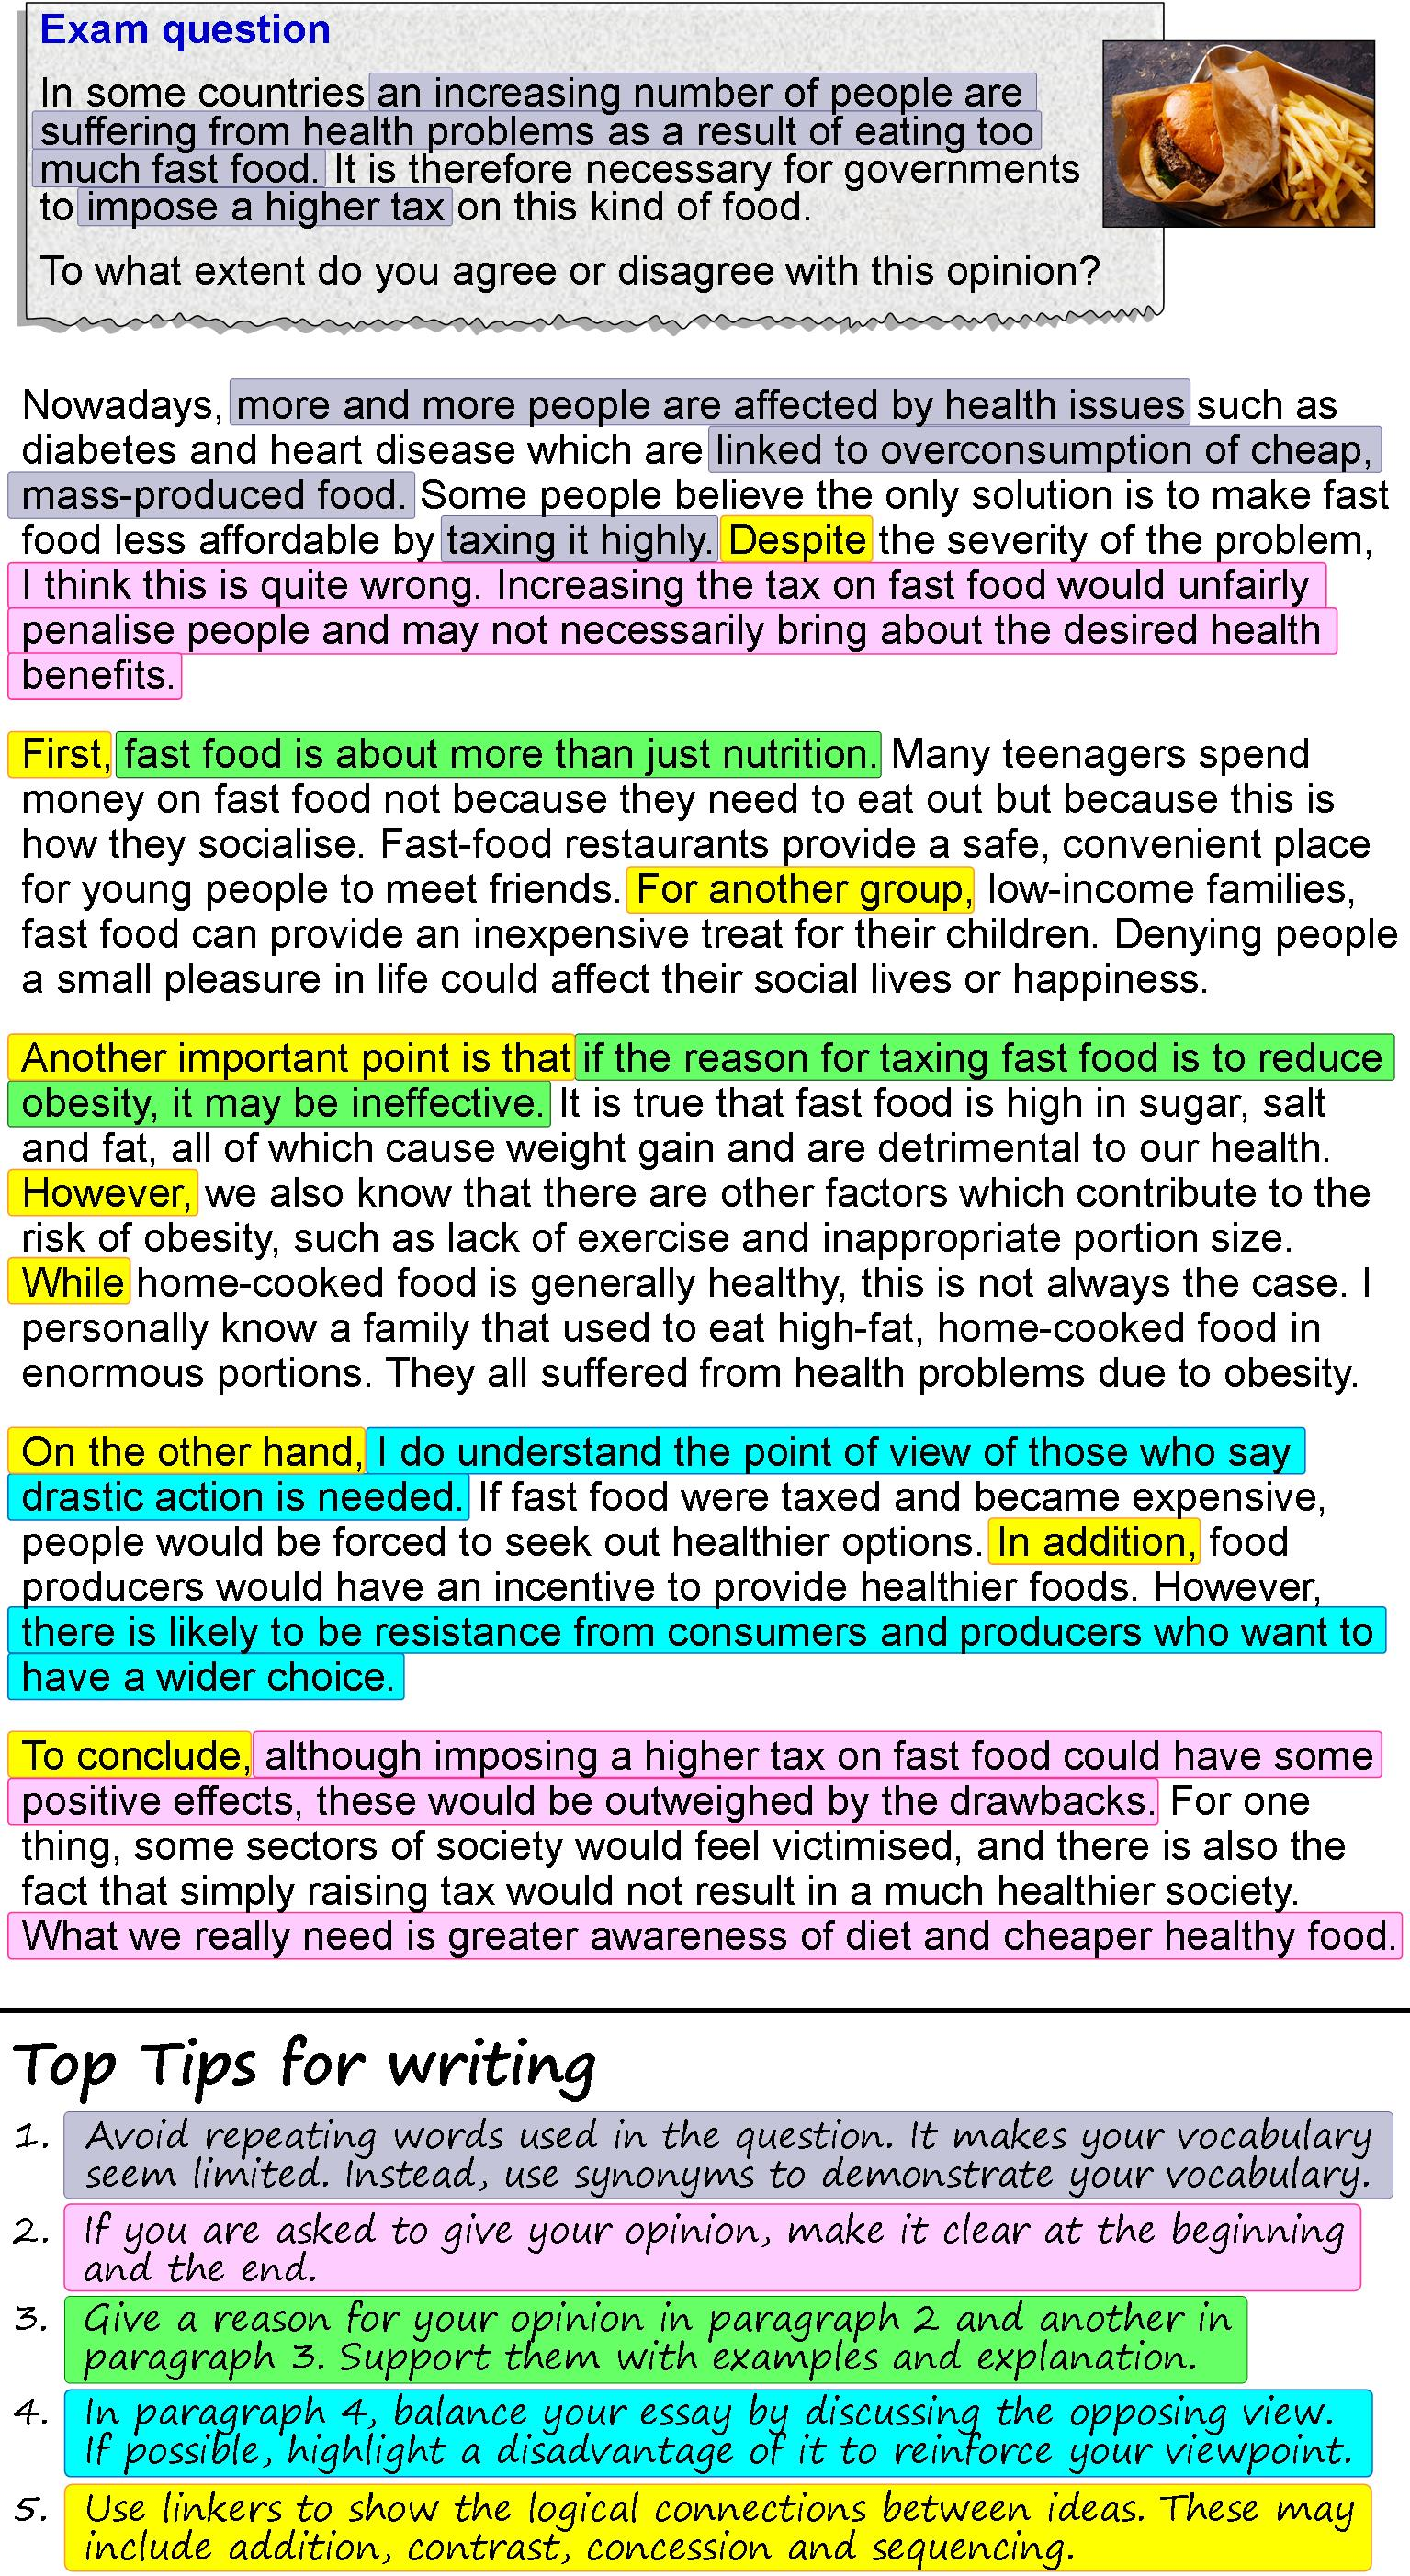 008 An Opinion Essay About Fast Food 4 Example Healthy Impressive Eating Topics Spm Habits Pdf Full